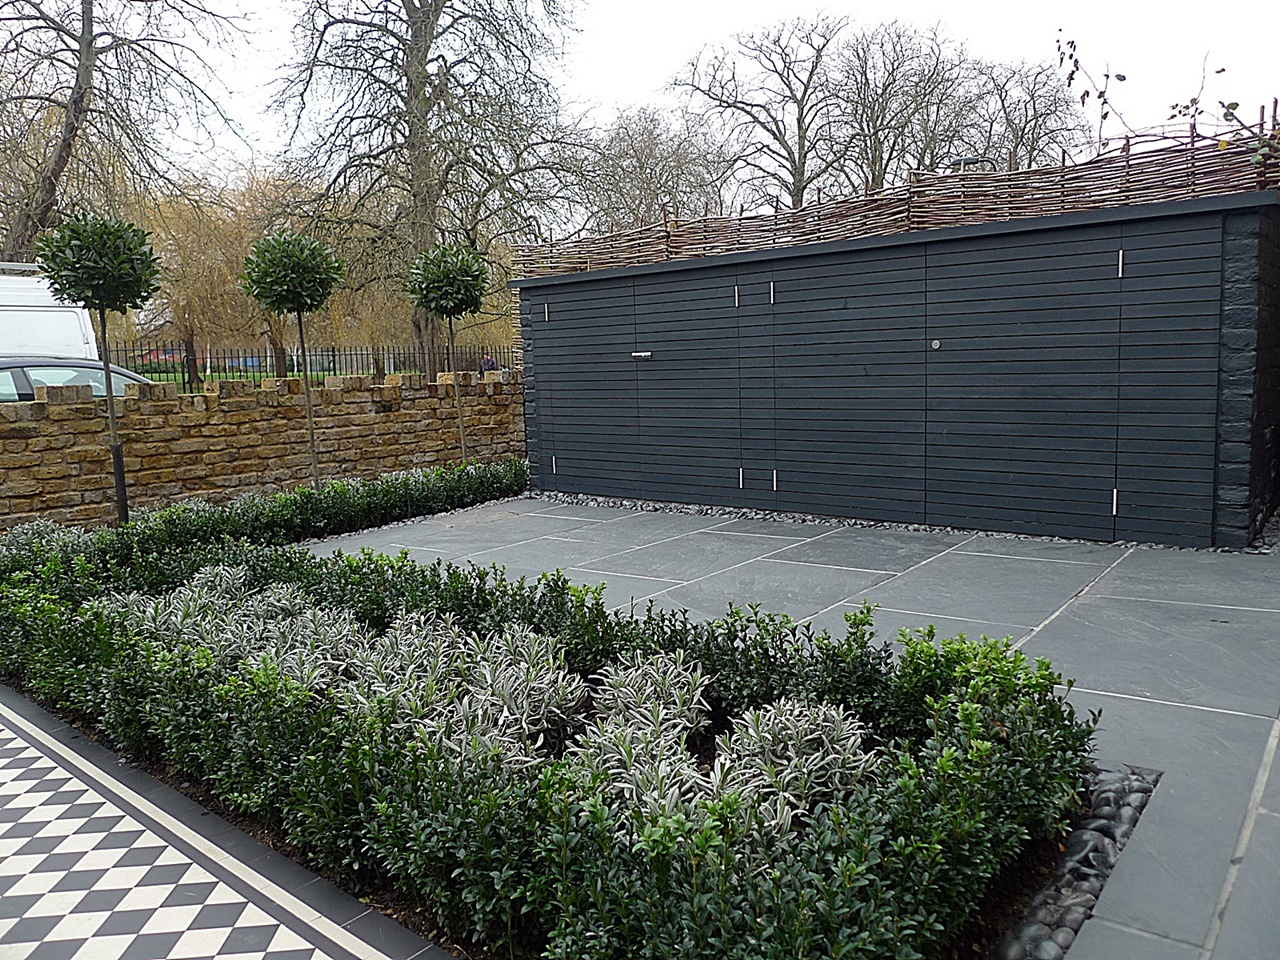 Planting storage bin path grey tile fron garden Chelsea Clapham London